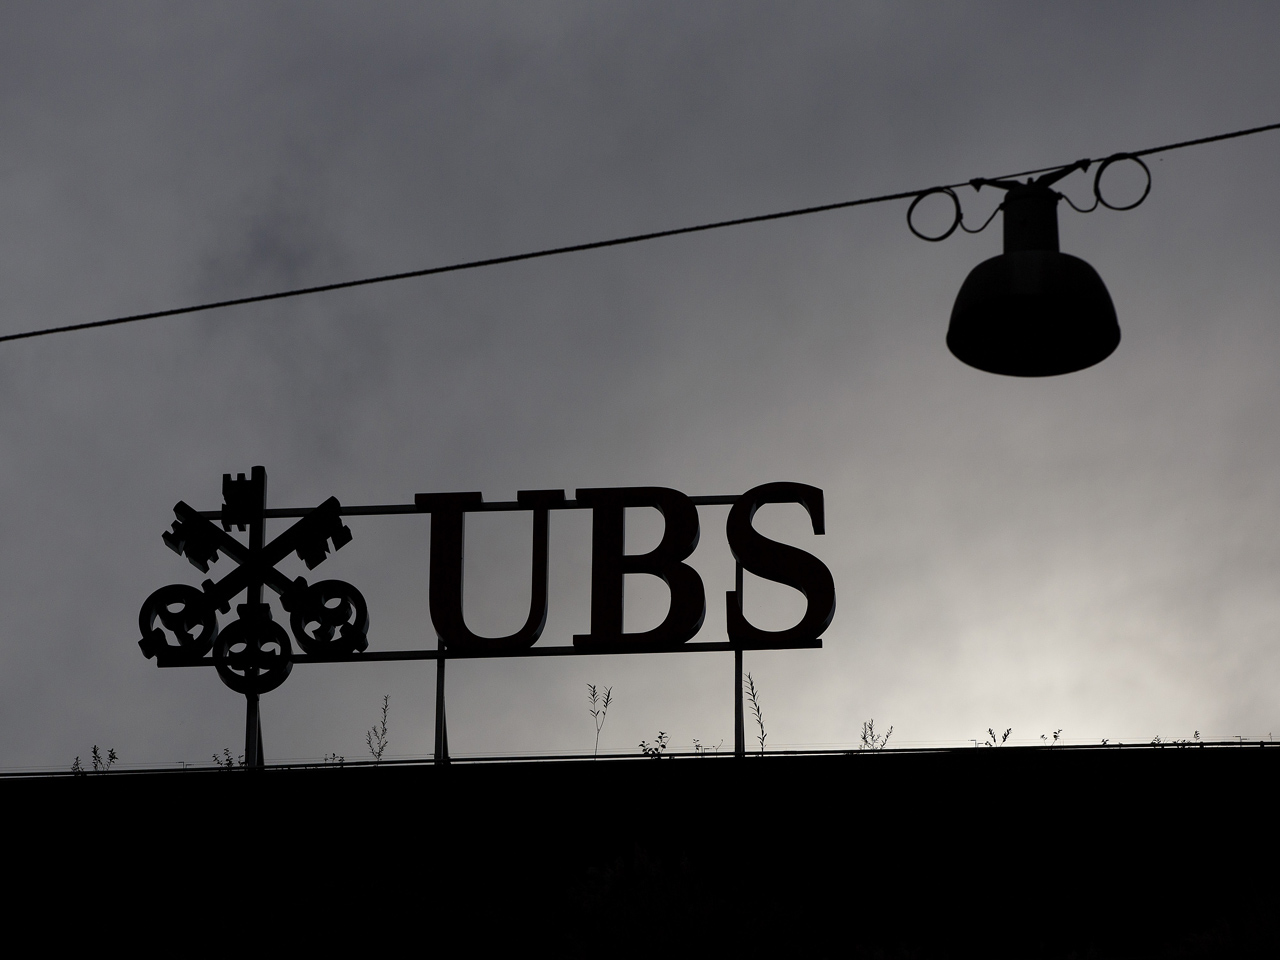 Swiss bank UBS to cut as many as 10,000 jobs - CBS News